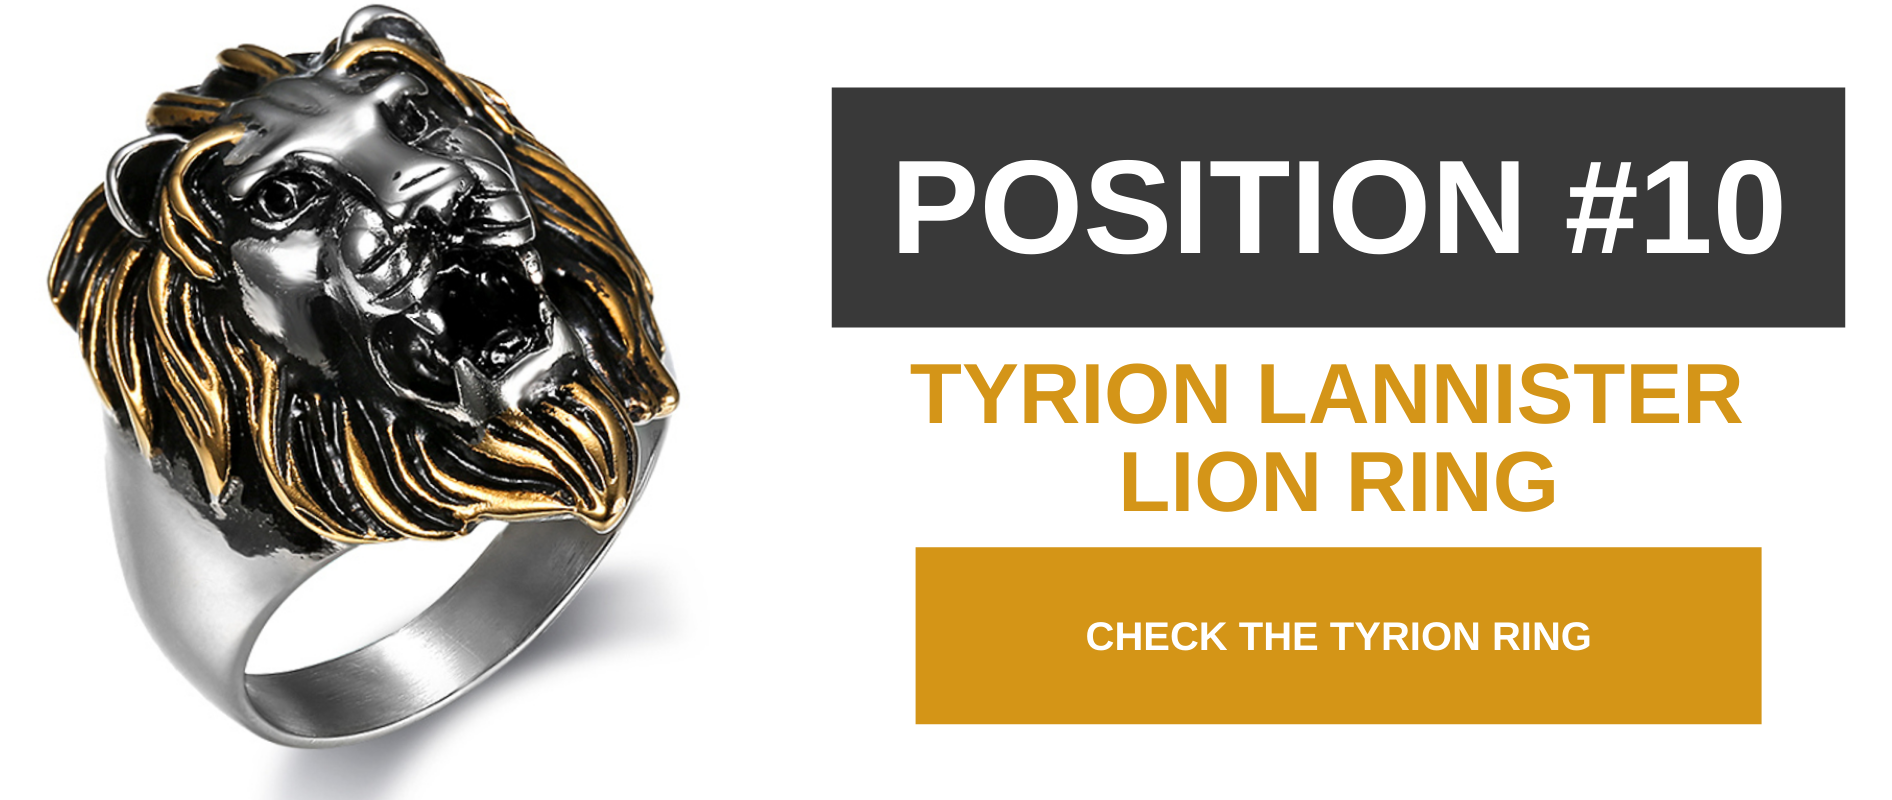 Tyron Lannister ring.